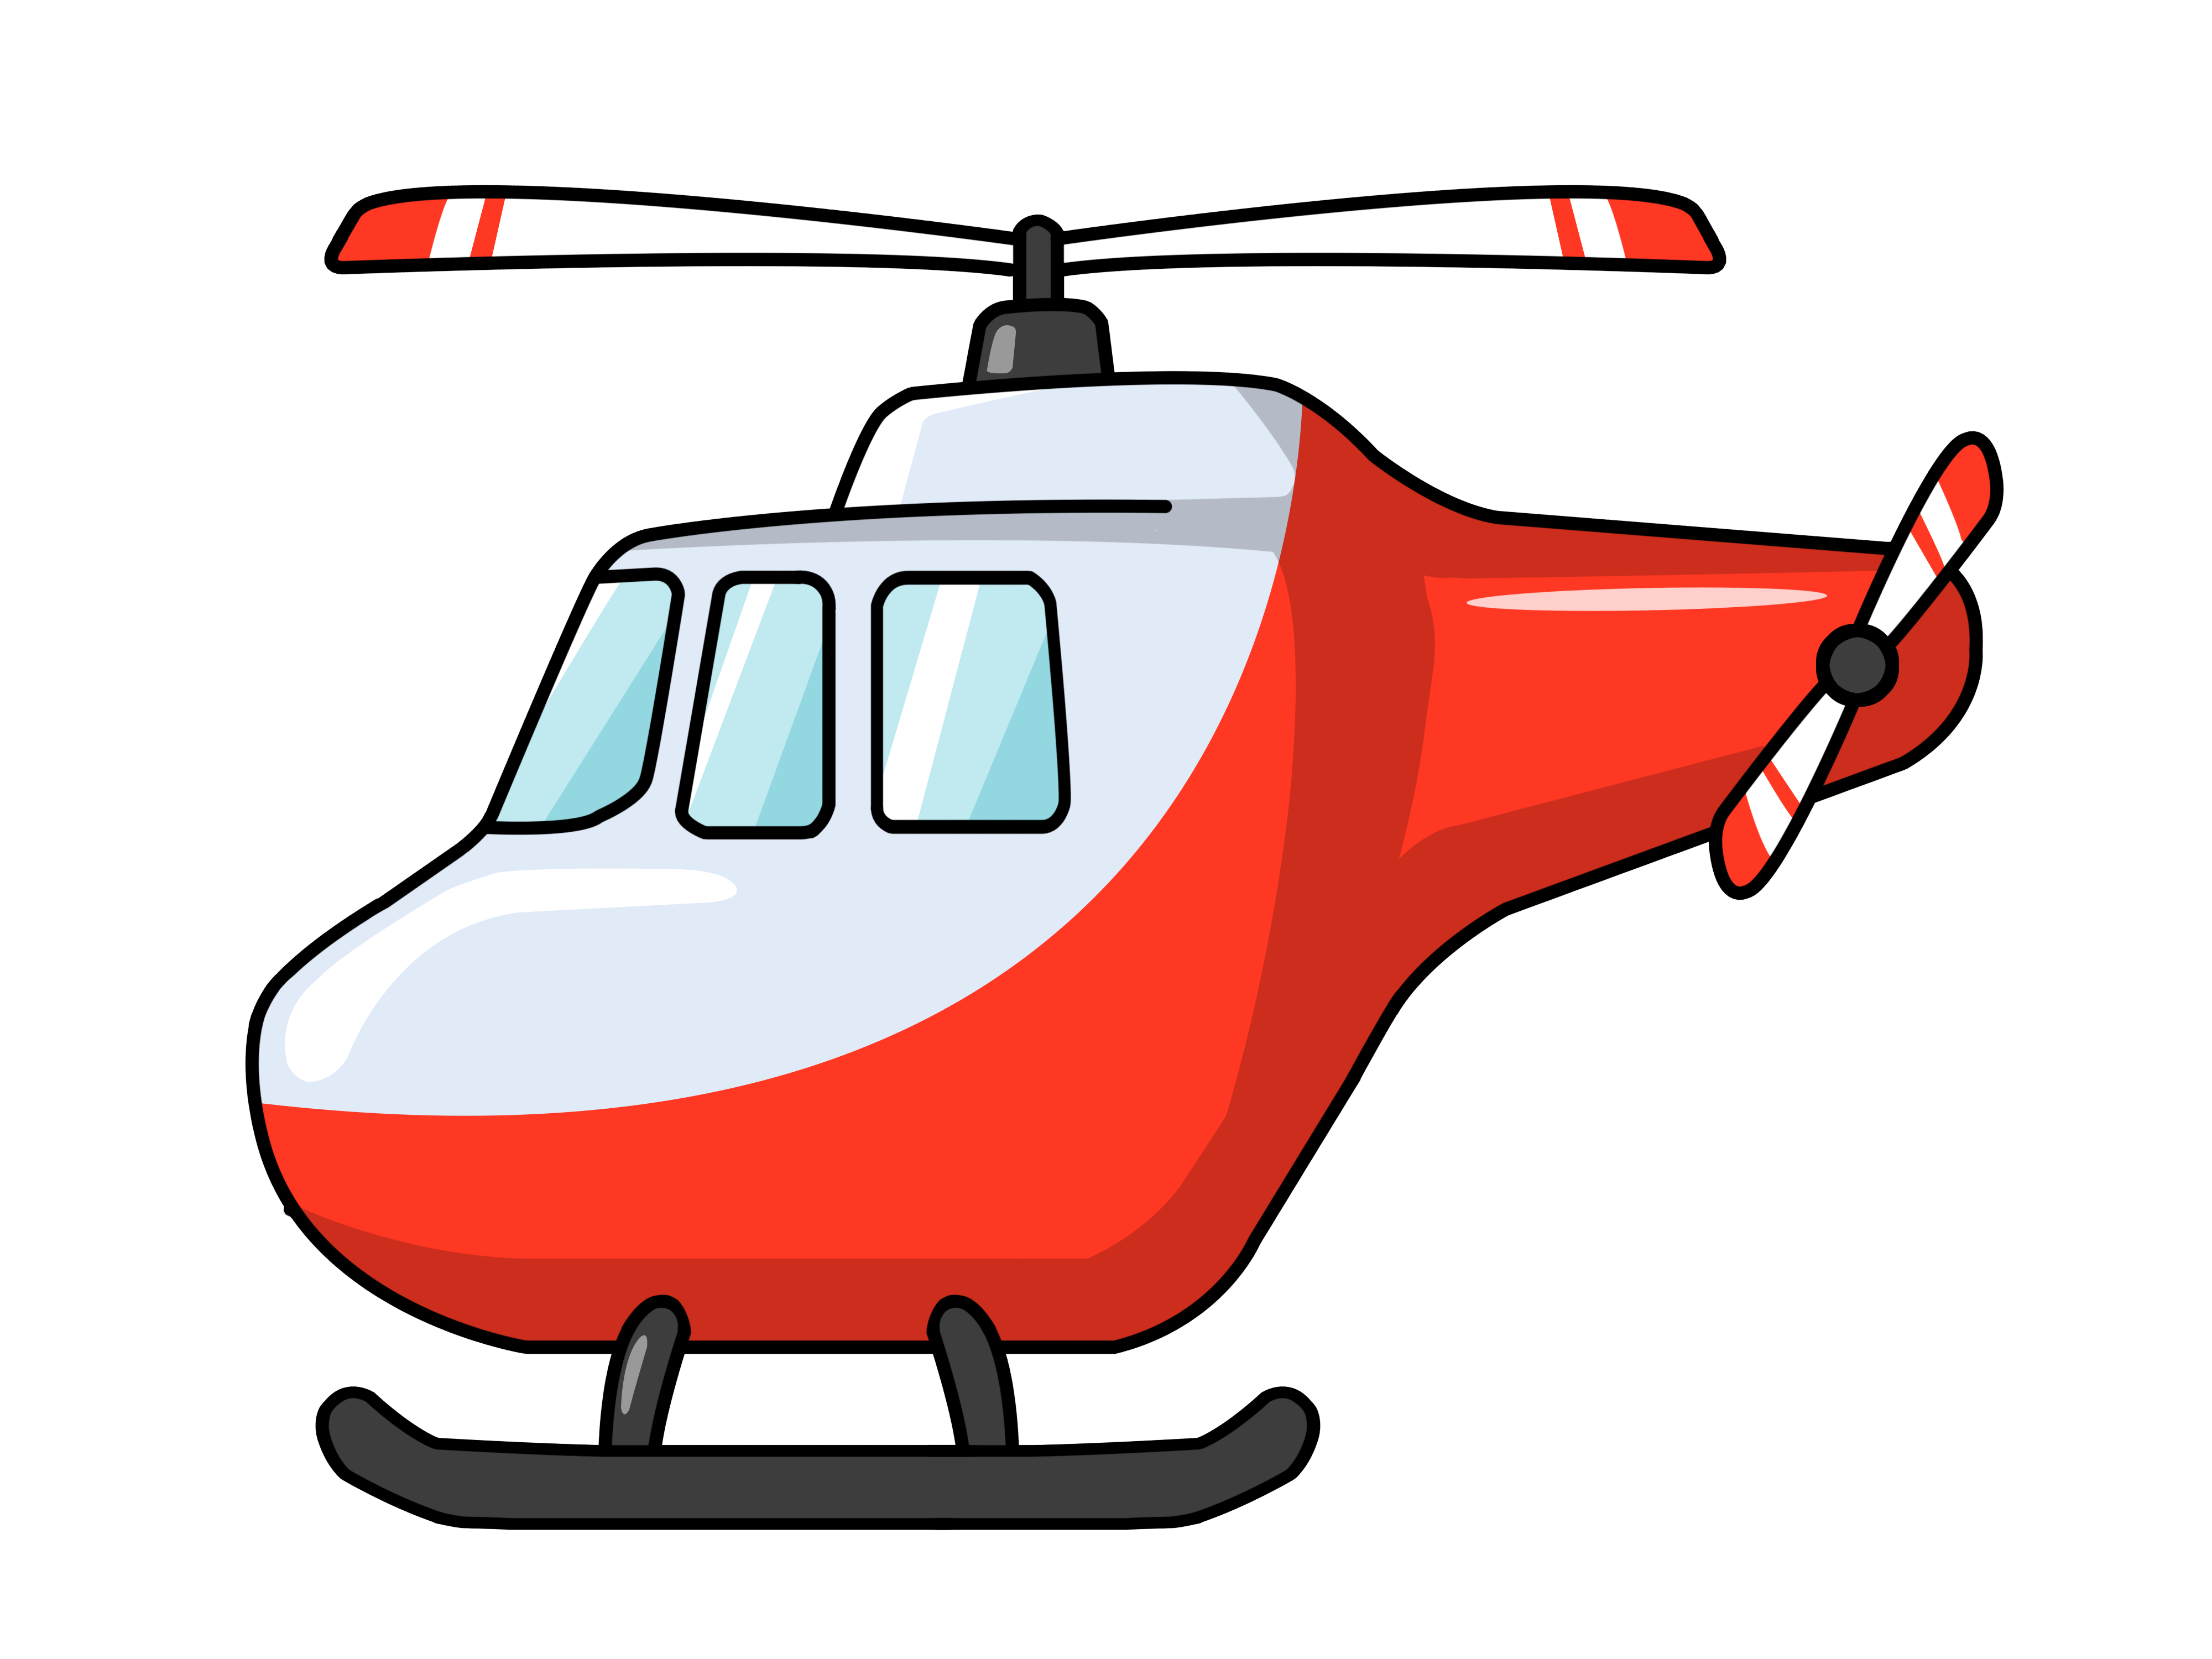 Free Helicopter Cliparts, Download Free Clip Art, Free Clip.